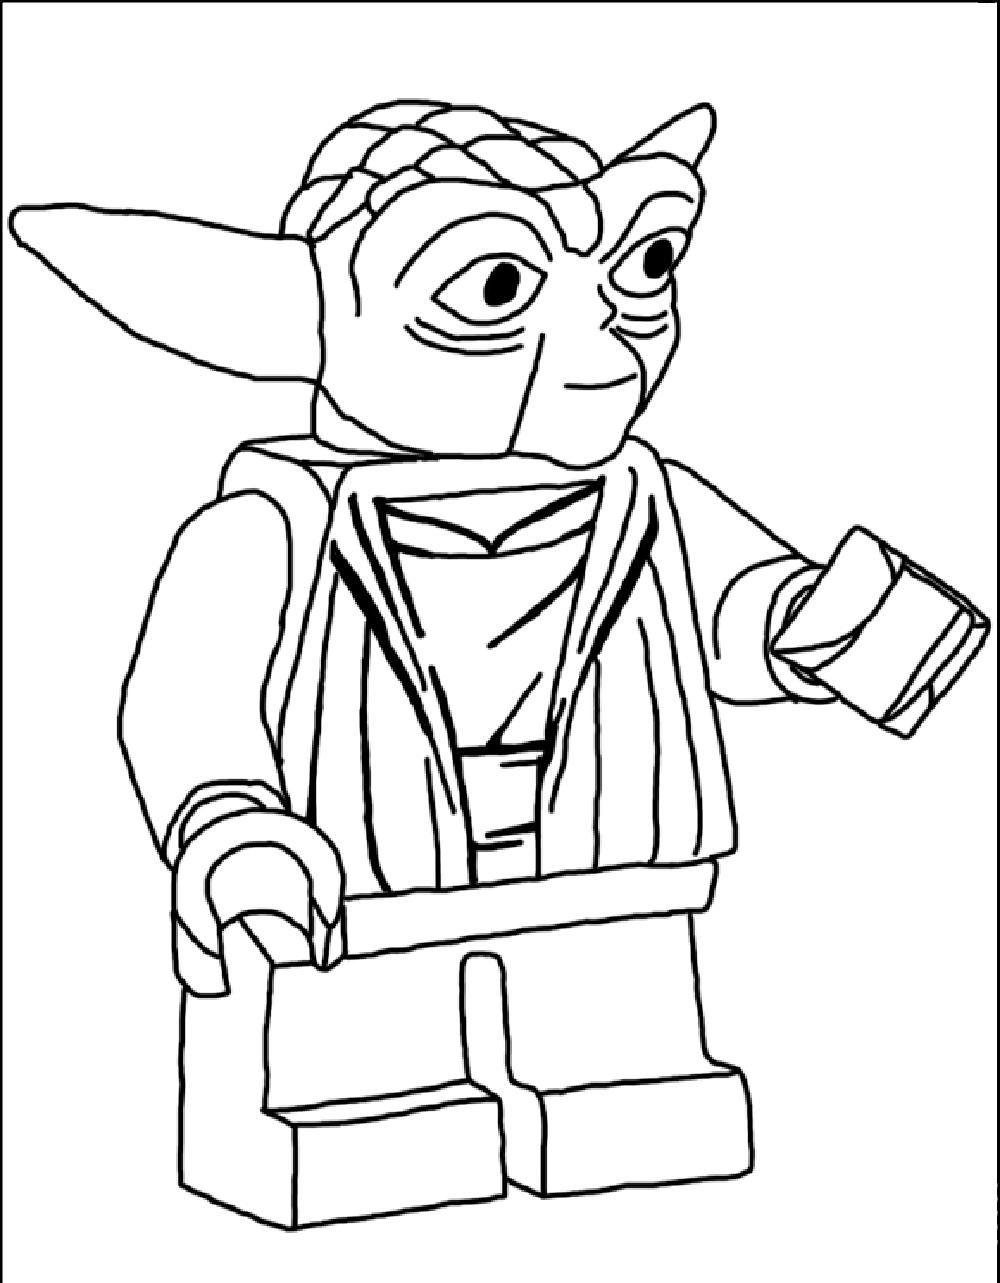 legos star wars coloring pages create your own lego coloring pages for kids legos coloring star wars pages